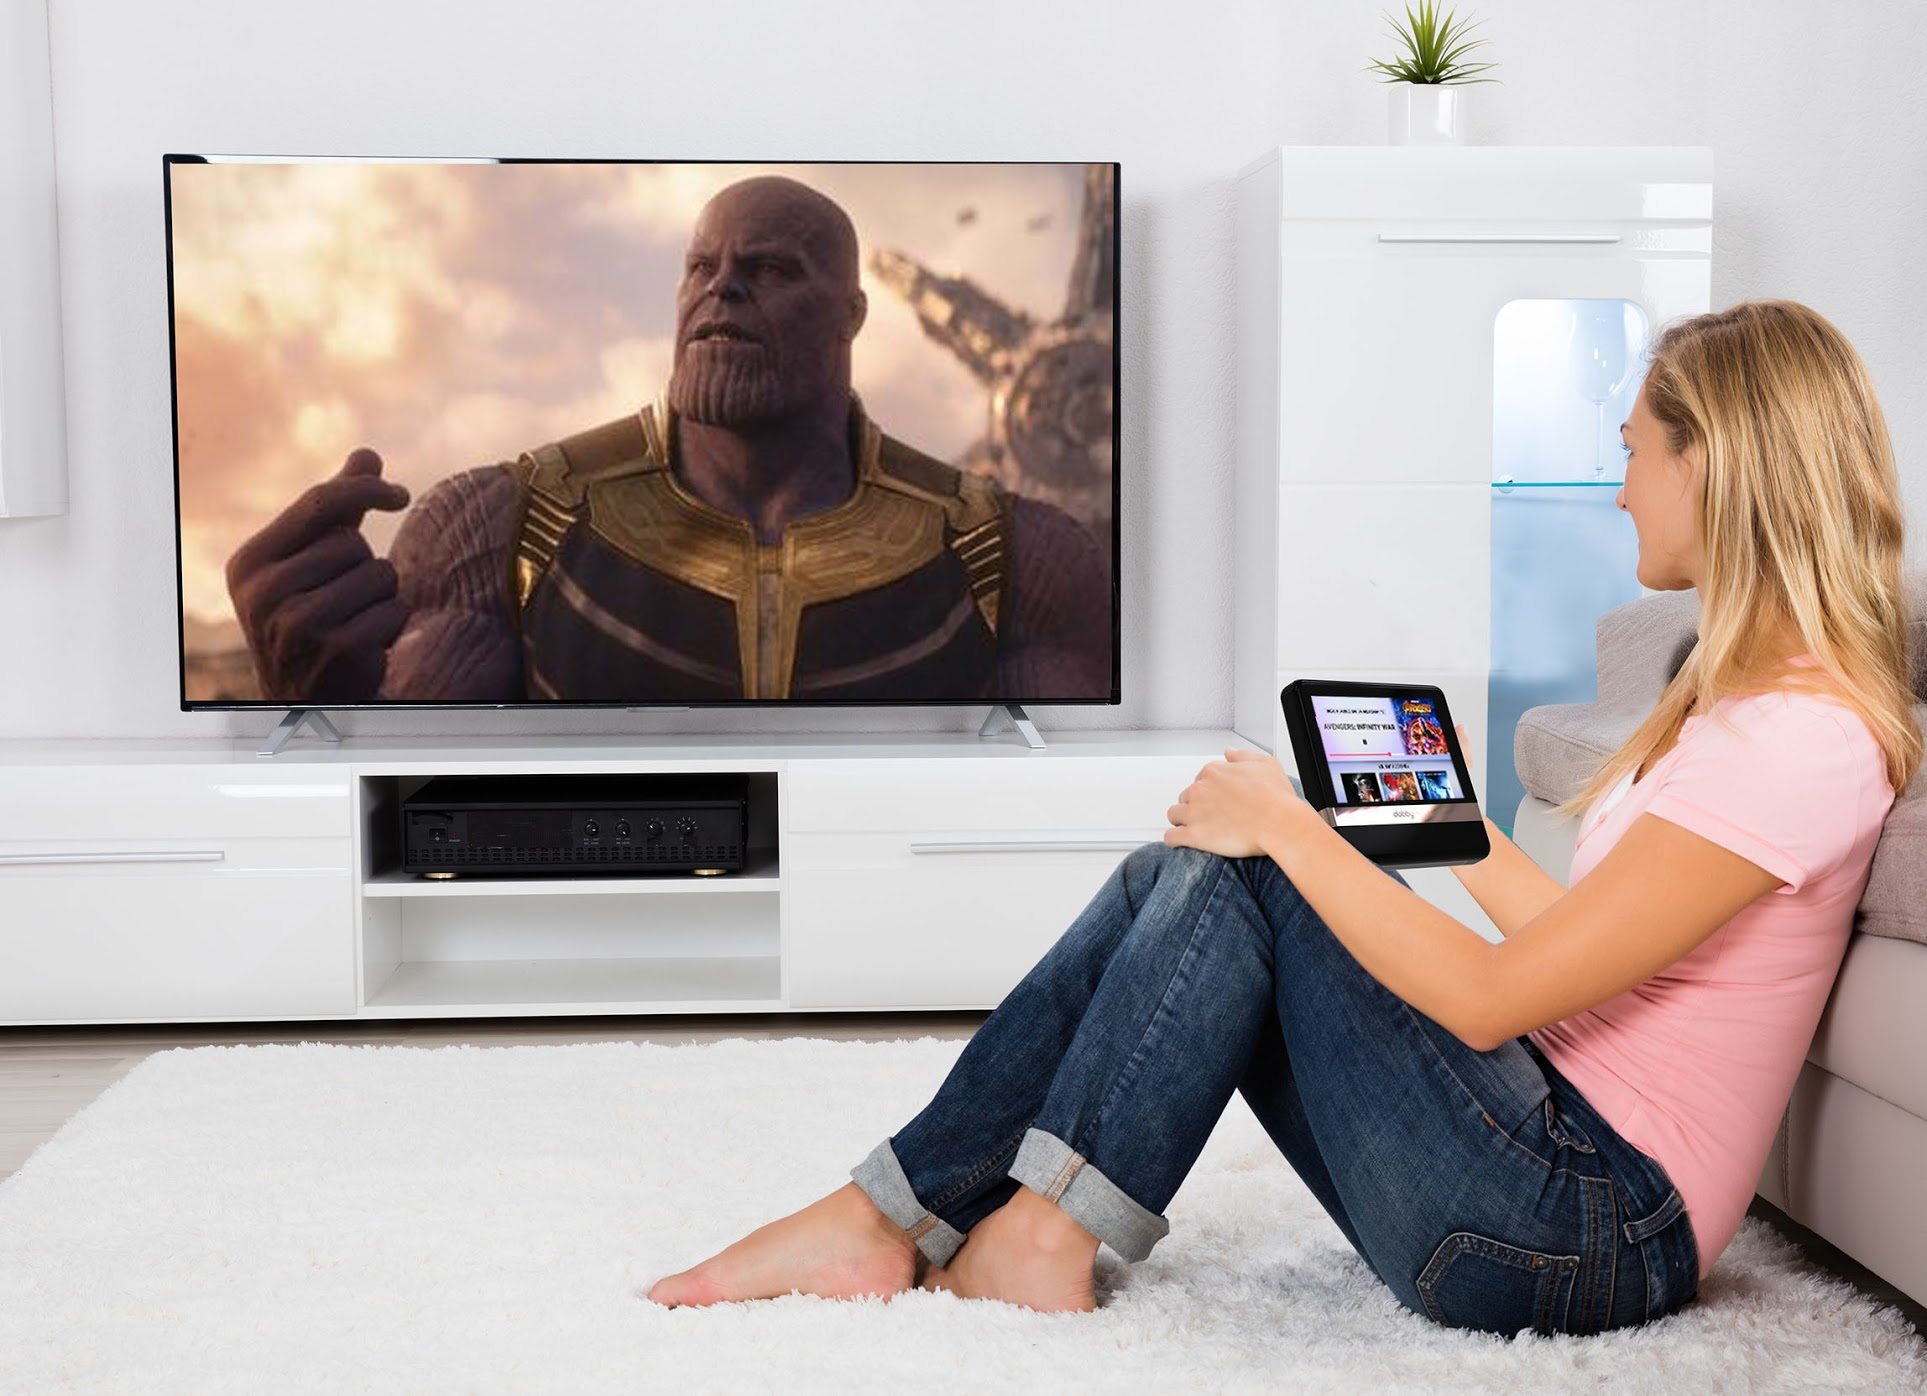 Dabby Can Help You Organize, Manage & Enjoy Your Streaming Services to Make Cord Cutting Easier